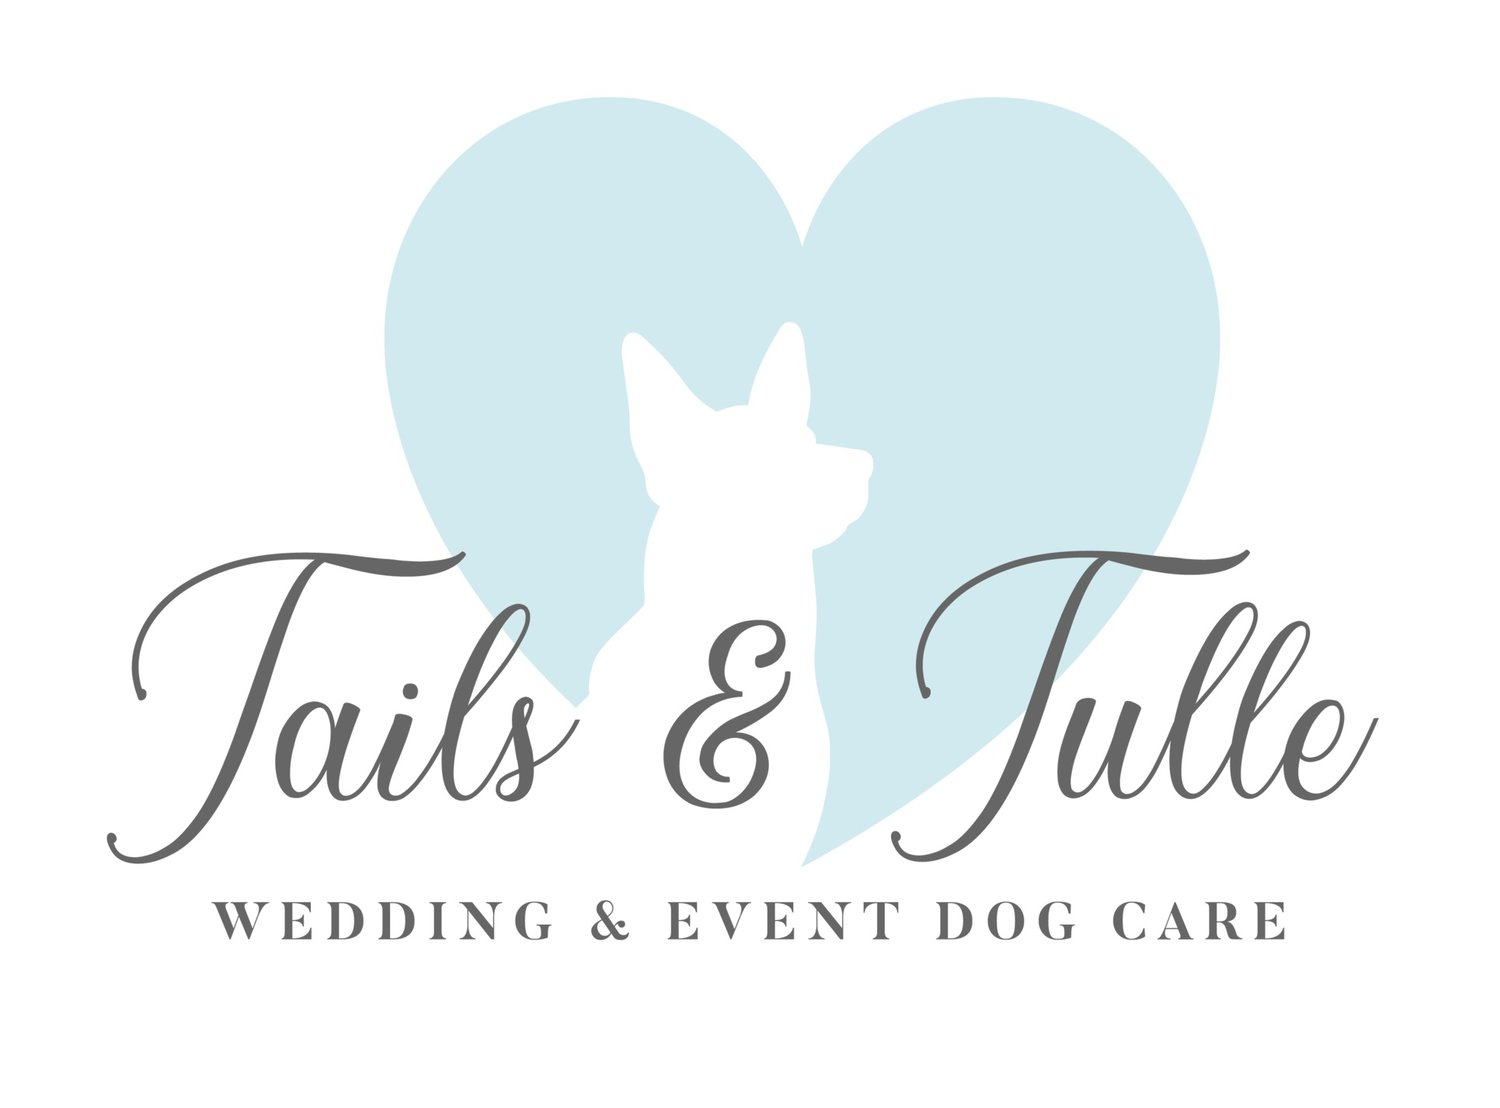 Tails & Tulle - Wedding and Event Dog Care | Virginia